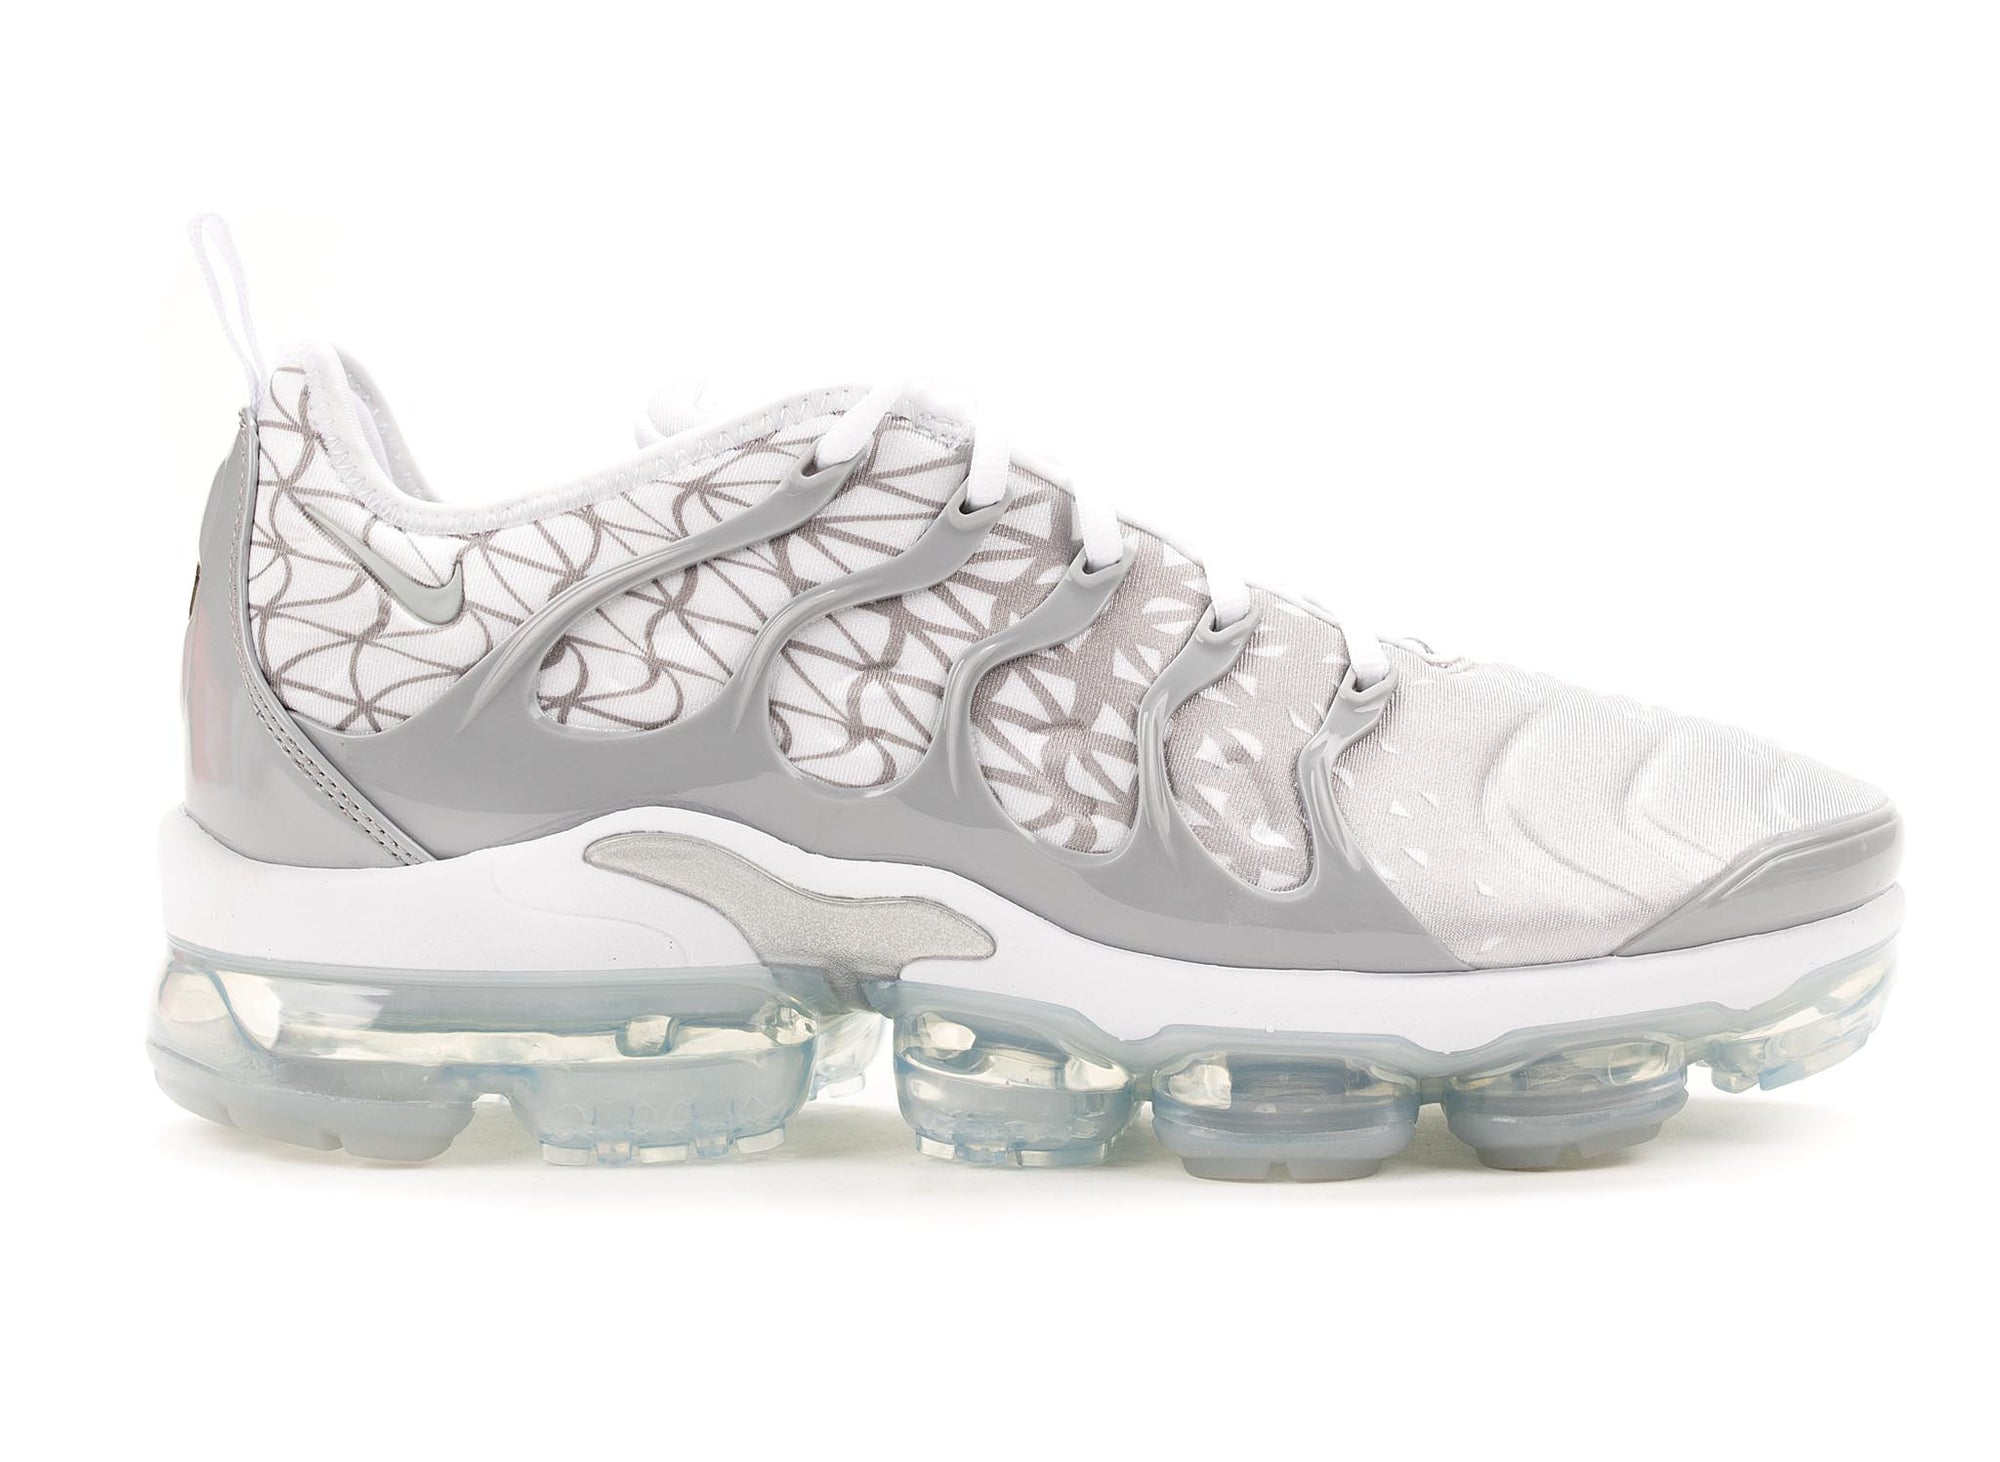 Nike Air Vapormax Plus 'Silver White'